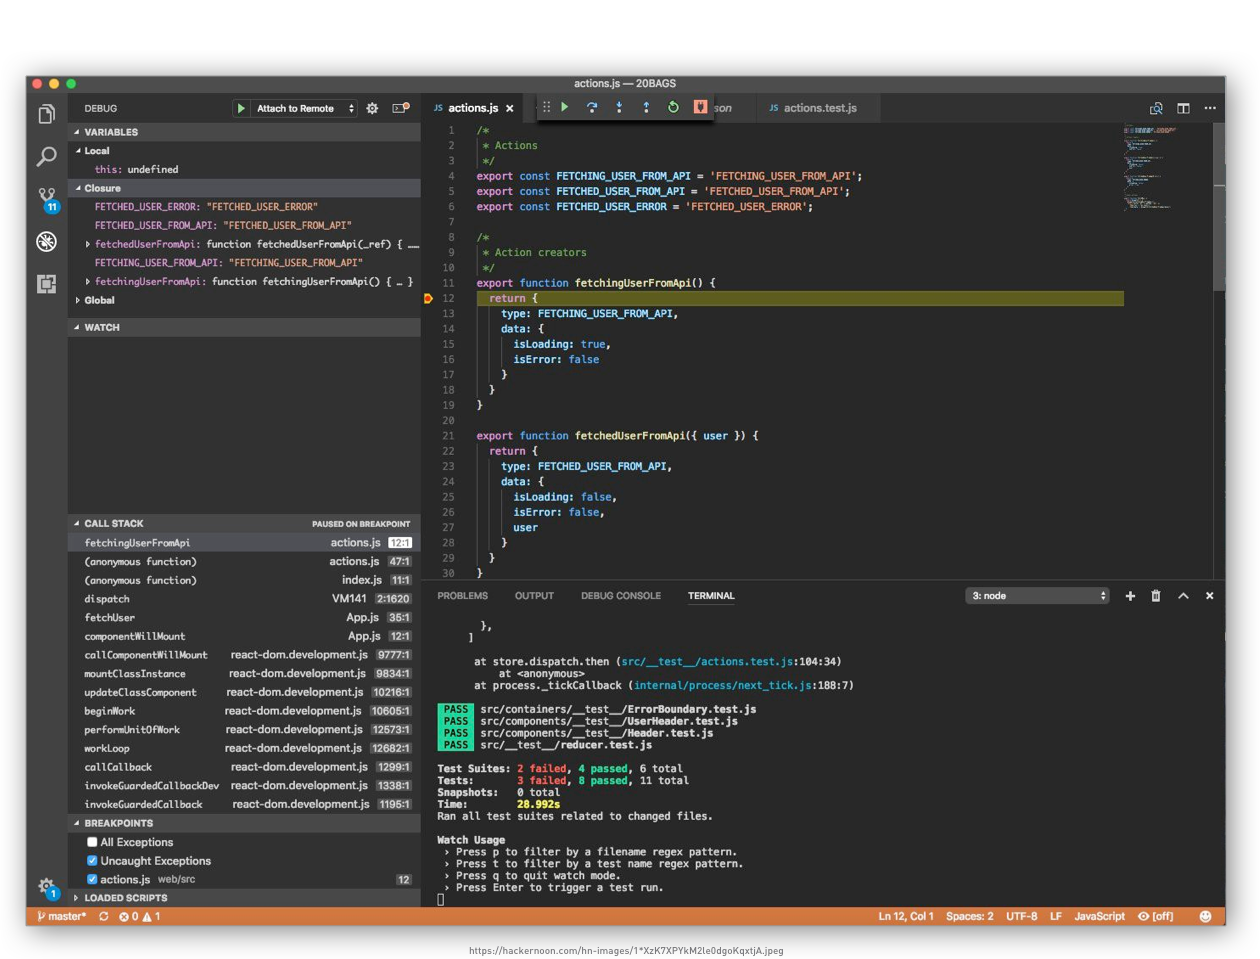 Programmatic debugger showing method calls, call stack, breakpoint & unit test results